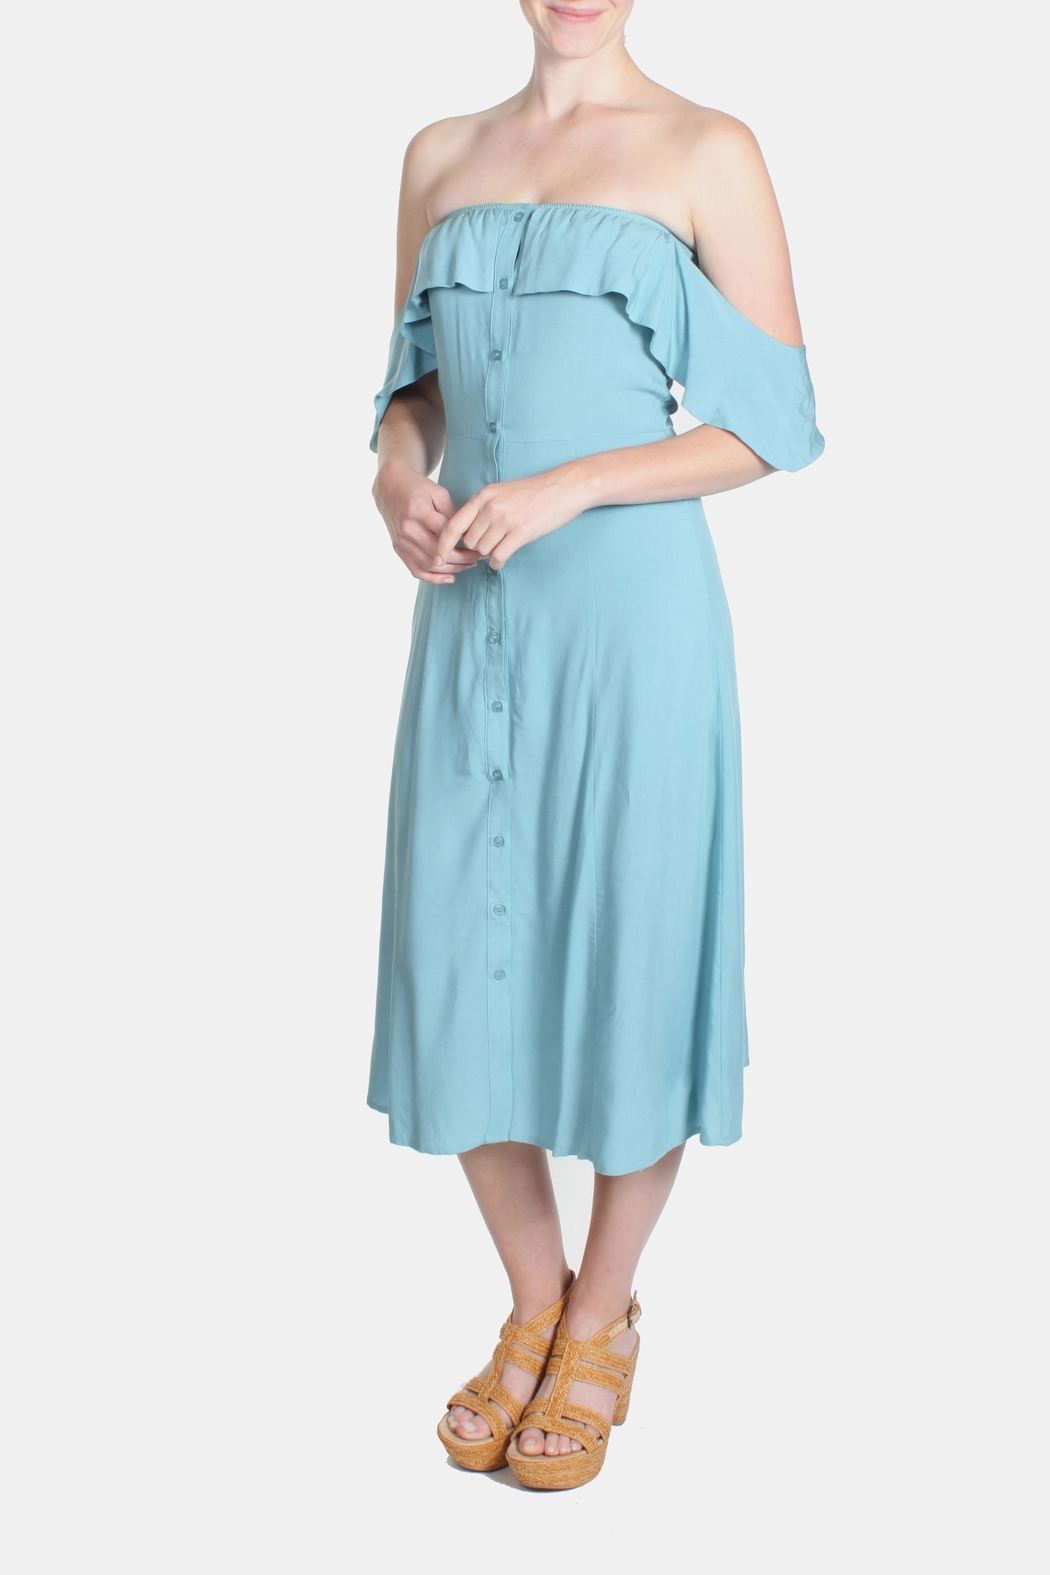 rokoko Mint Off Shoulder Dress - Main Image